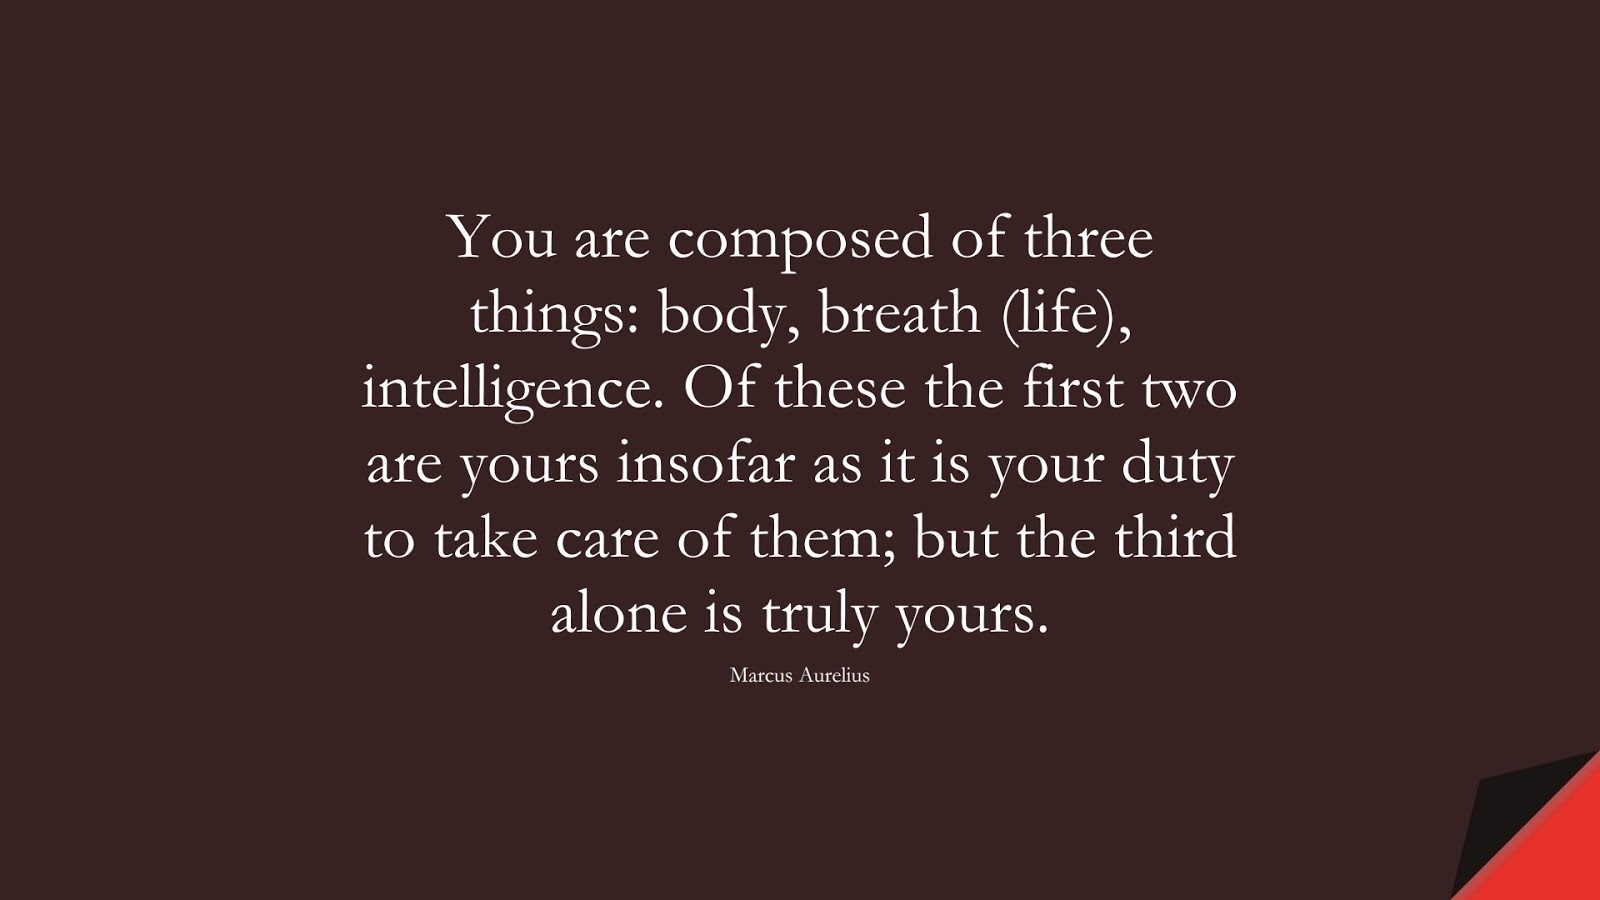 You are composed of three things: body, breath (life), intelligence. Of these the first two are yours insofar as it is your duty to take care of them; but the third alone is truly yours. (Marcus Aurelius);  #MarcusAureliusQuotes